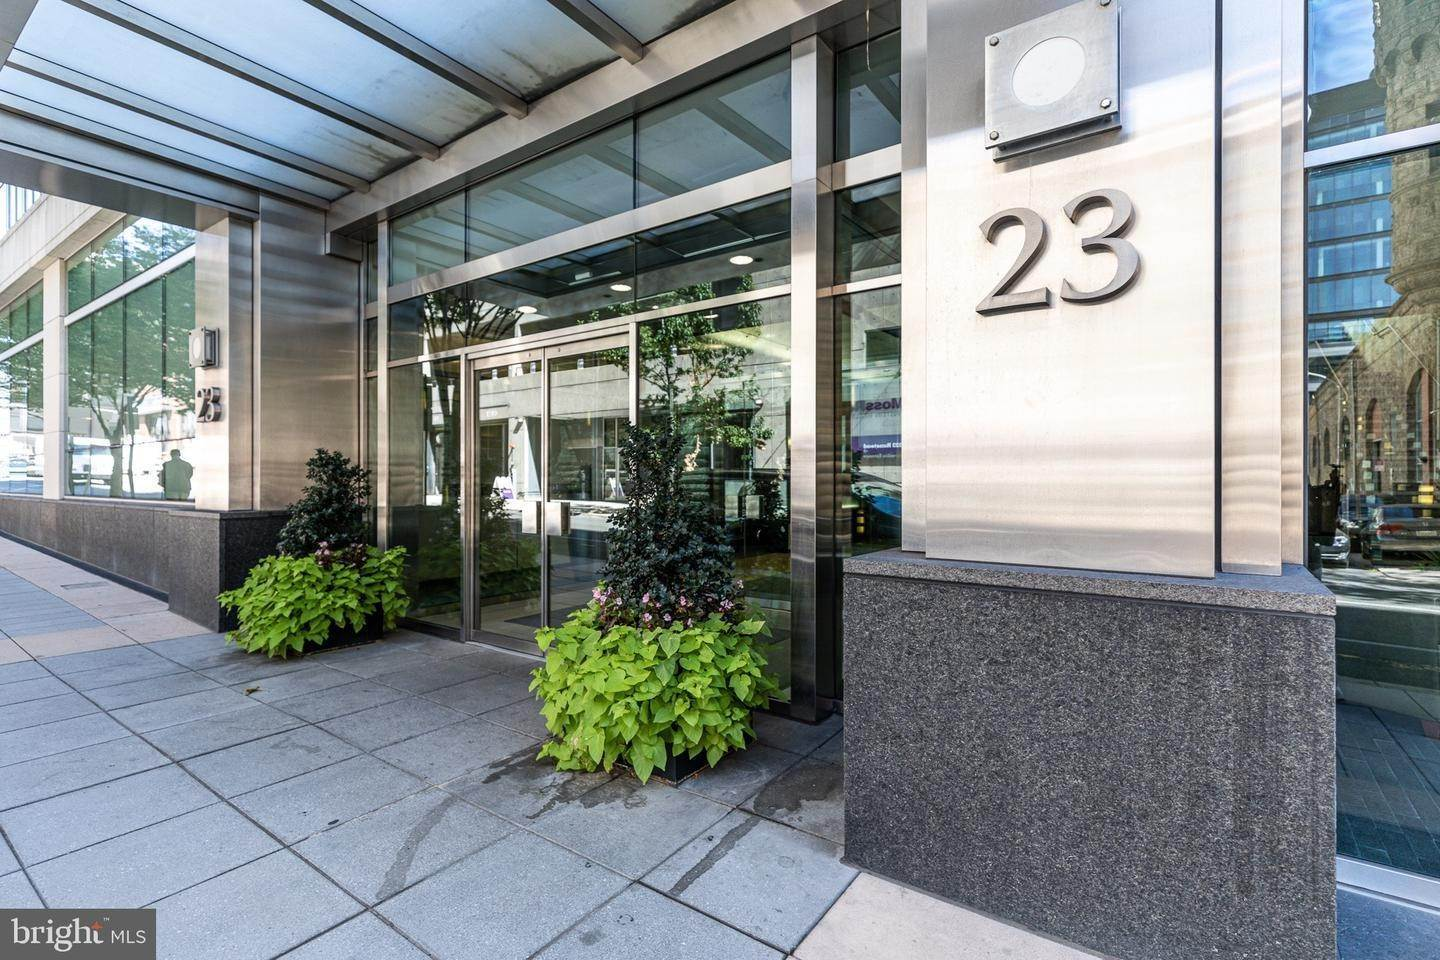 3. Apartments for Sale at 23 S 23RD ST #5B Philadelphia, Pennsylvania 19103 United States